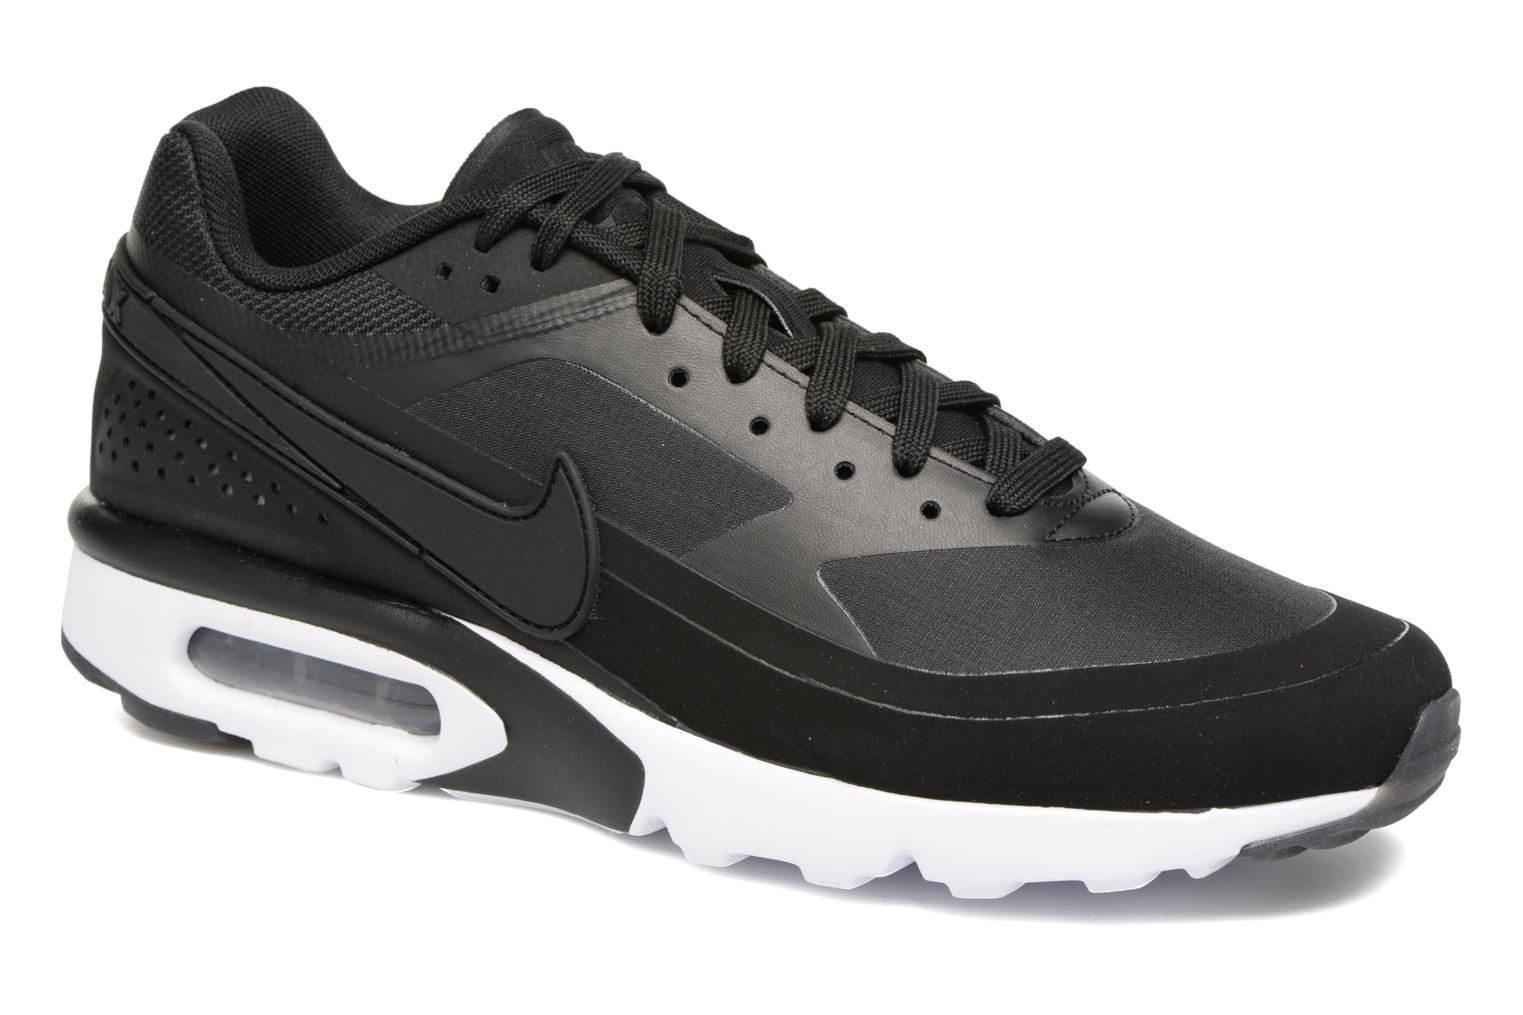 Nike Air Max Bw Ultra Black/Black-Black-White